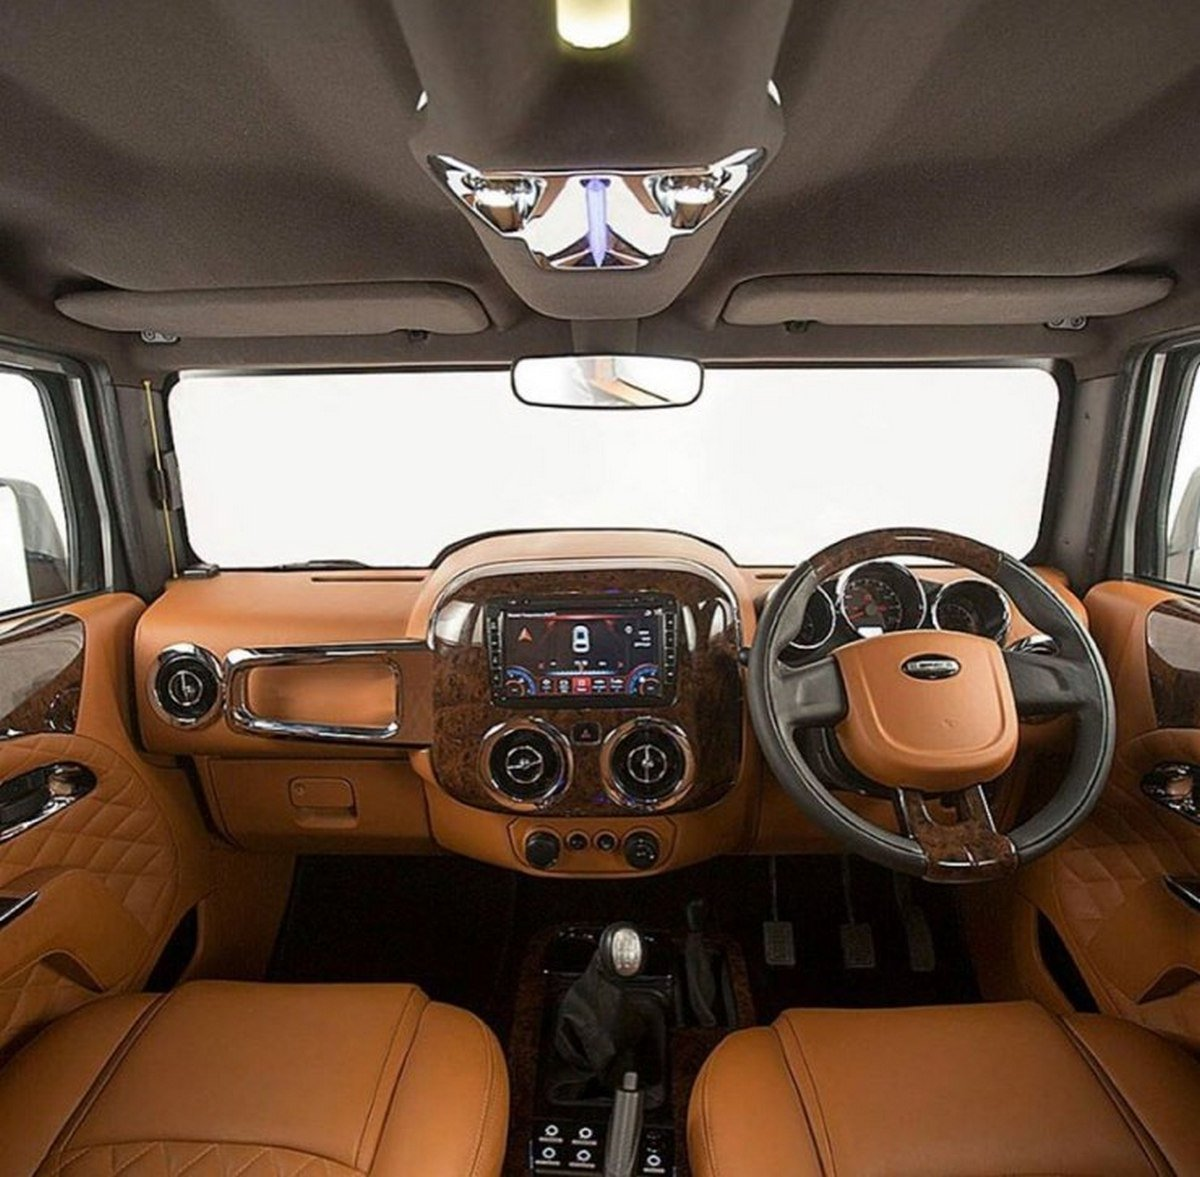 Inside-view-of-the-SUV